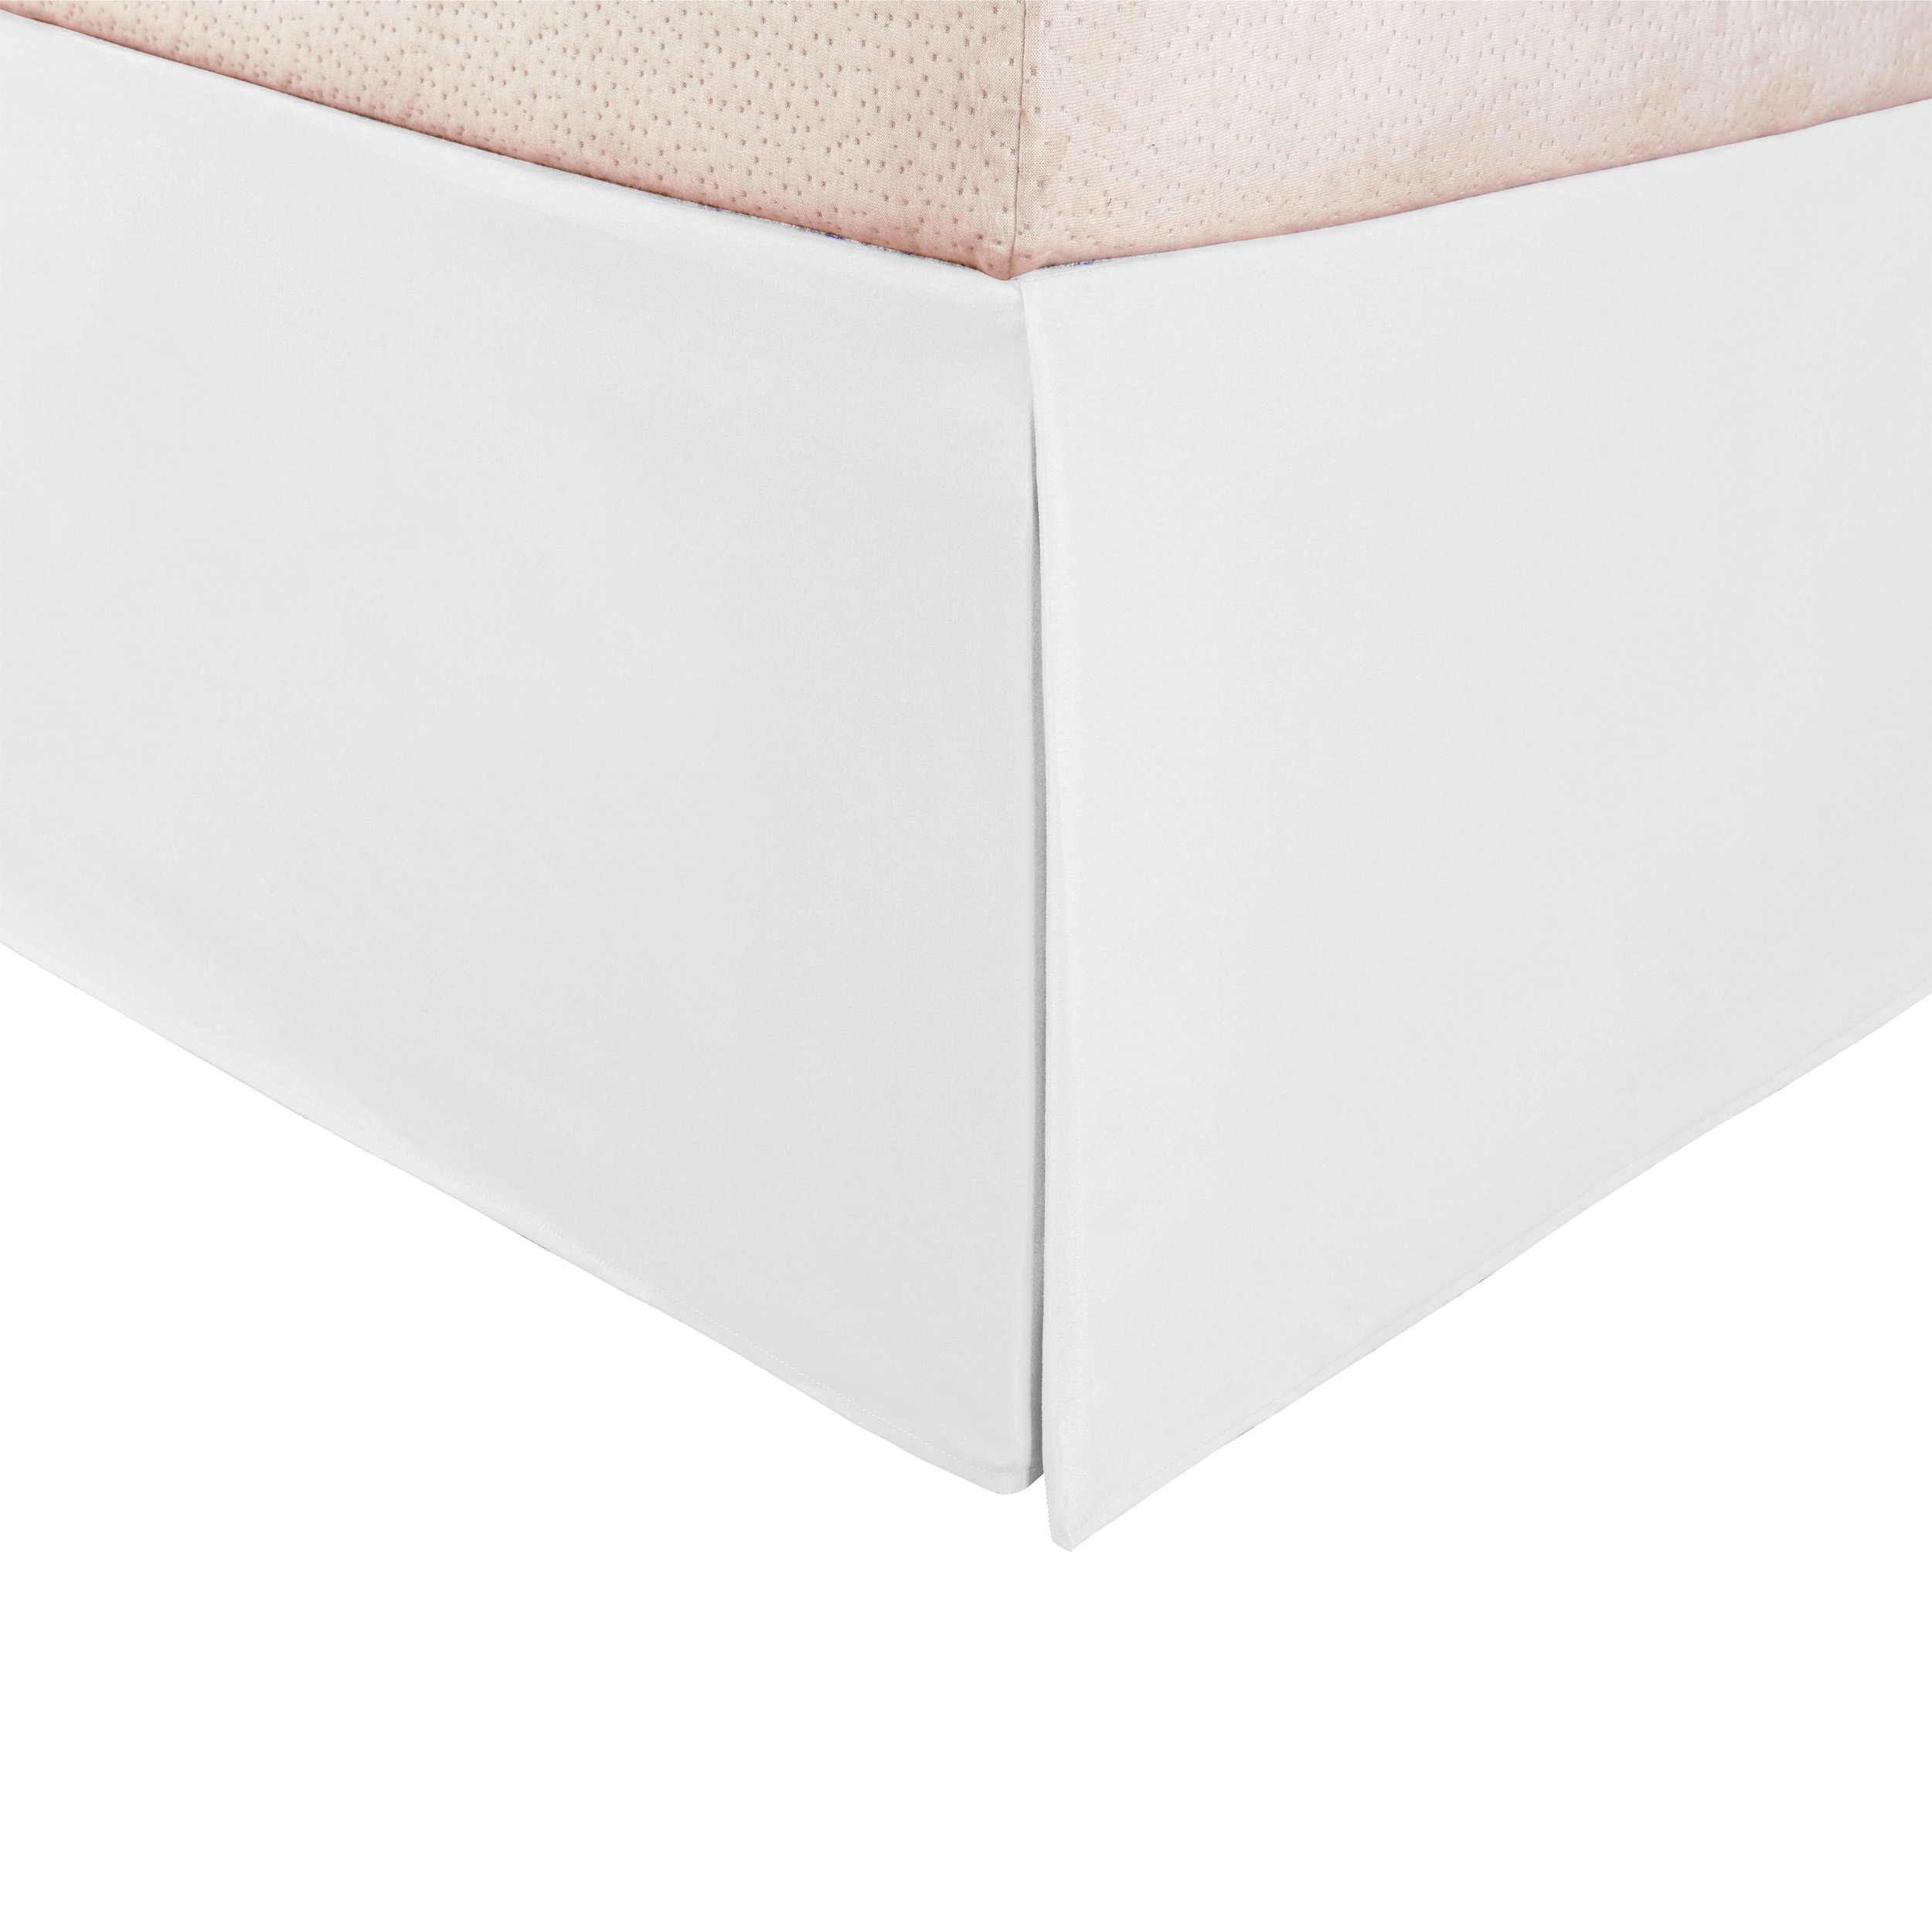 """Superior 1500 Series Premium Quality 100% Brushed Microfiber Bed Skirt with 15"""" Drop, Pleated Sides and Split Corners, Fade and Wrinkle Resistant - Queen, White"""